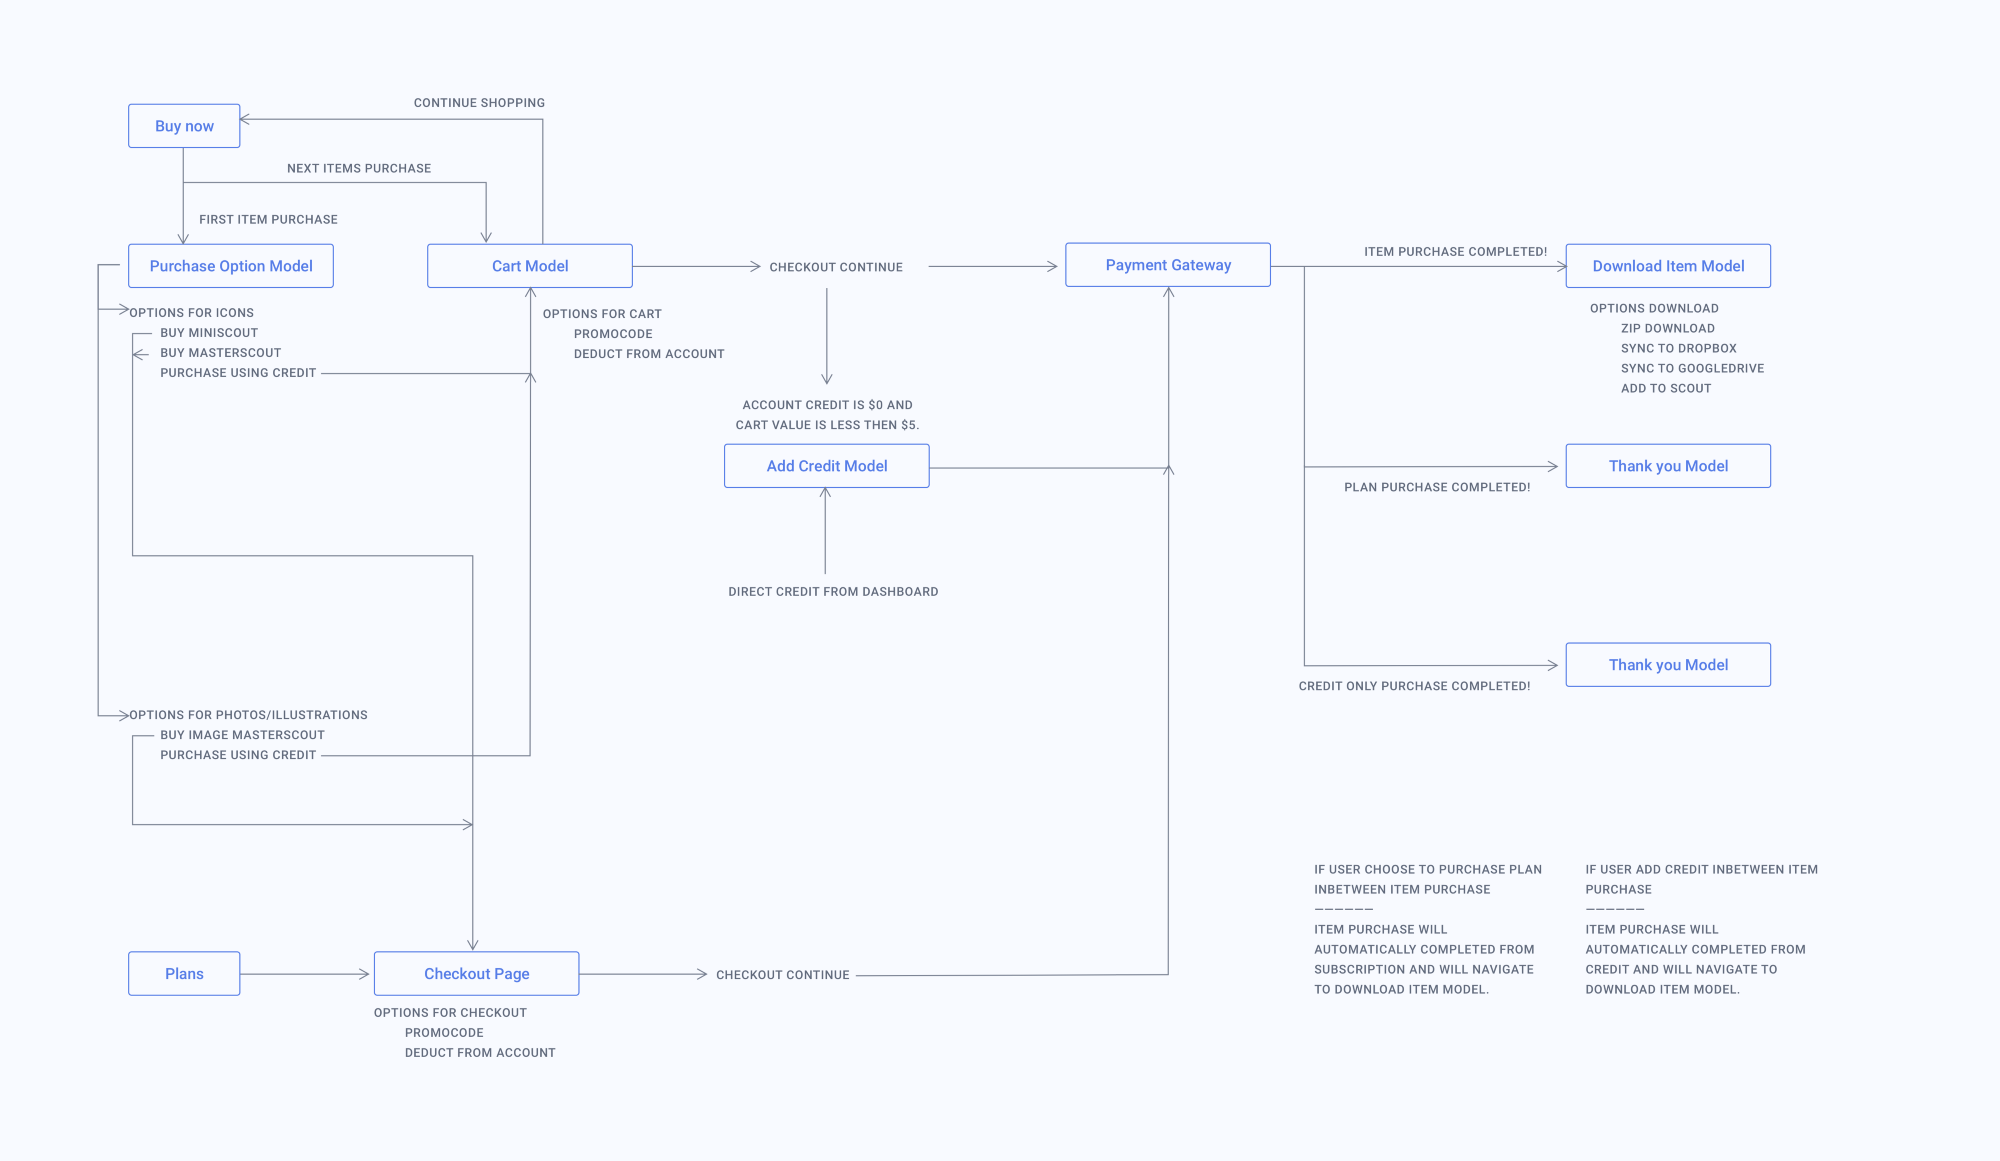 User flow image by Brandon Crooks on Mockup and Wireframe